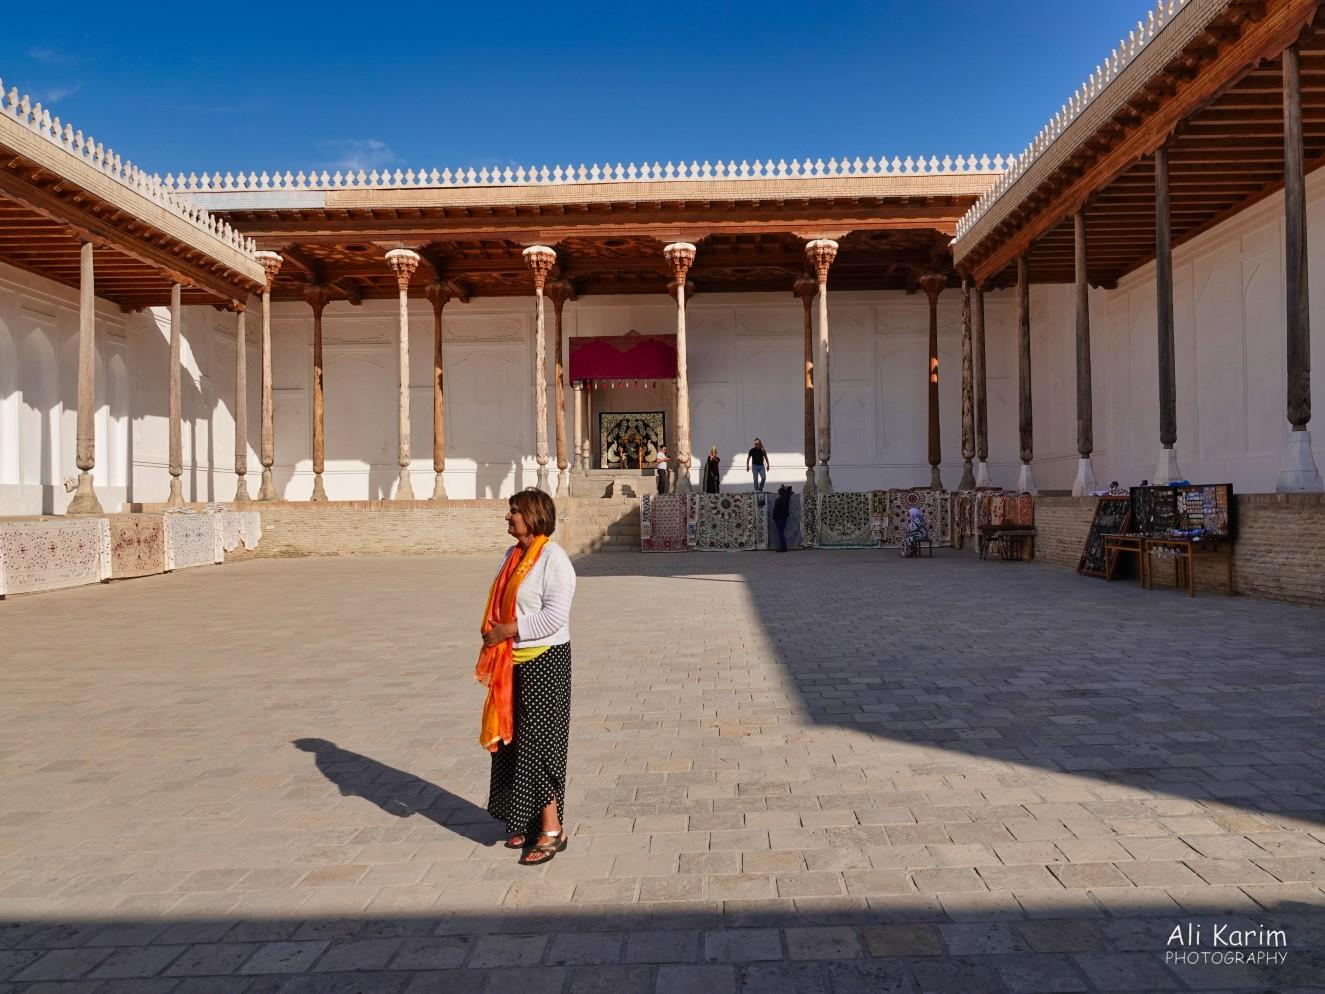 Bukhara, Oct 2019, Courtyard where the Emir's used to hold audience with his viziers and his subjects